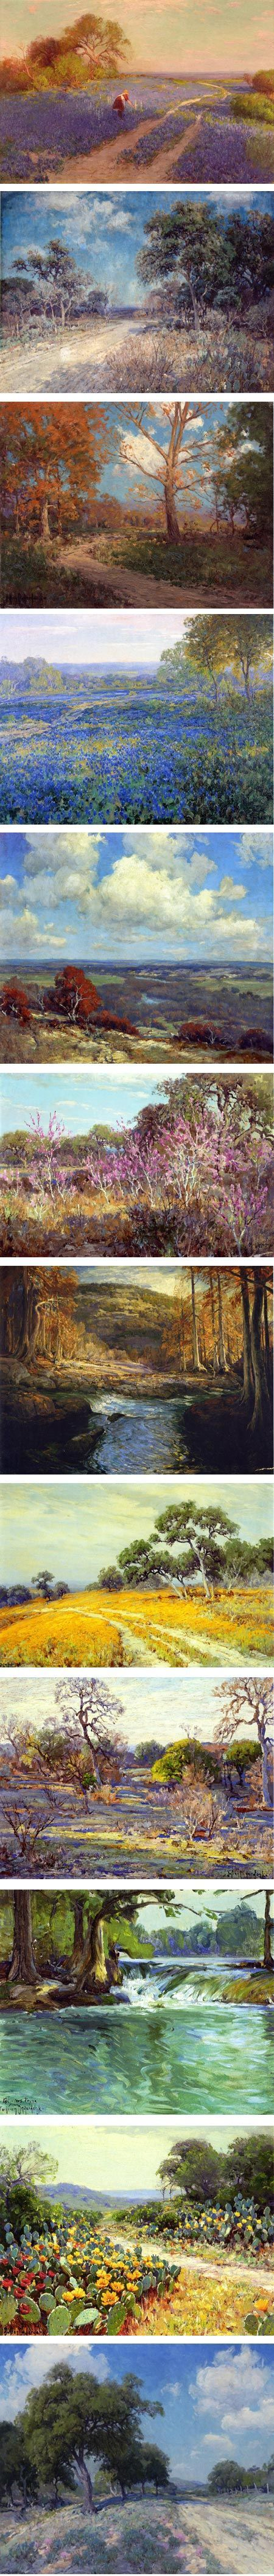 lines and colors :: a blog about drawing, painting, illustration, comics, concept art and other visual arts » Julian Onderdonk